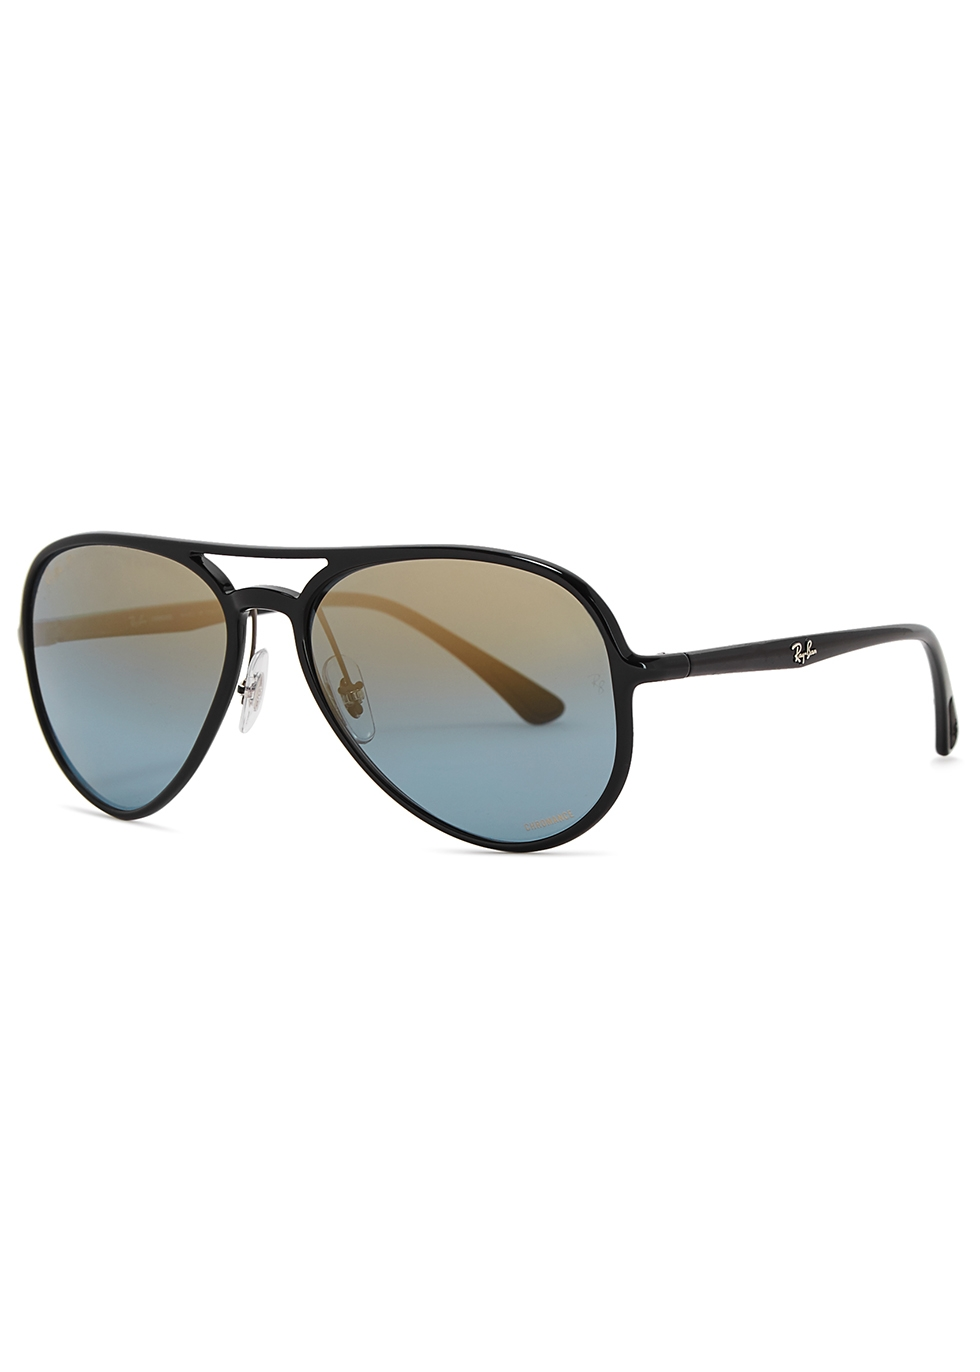 Aviator black mirrored sunglasses - Ray-Ban